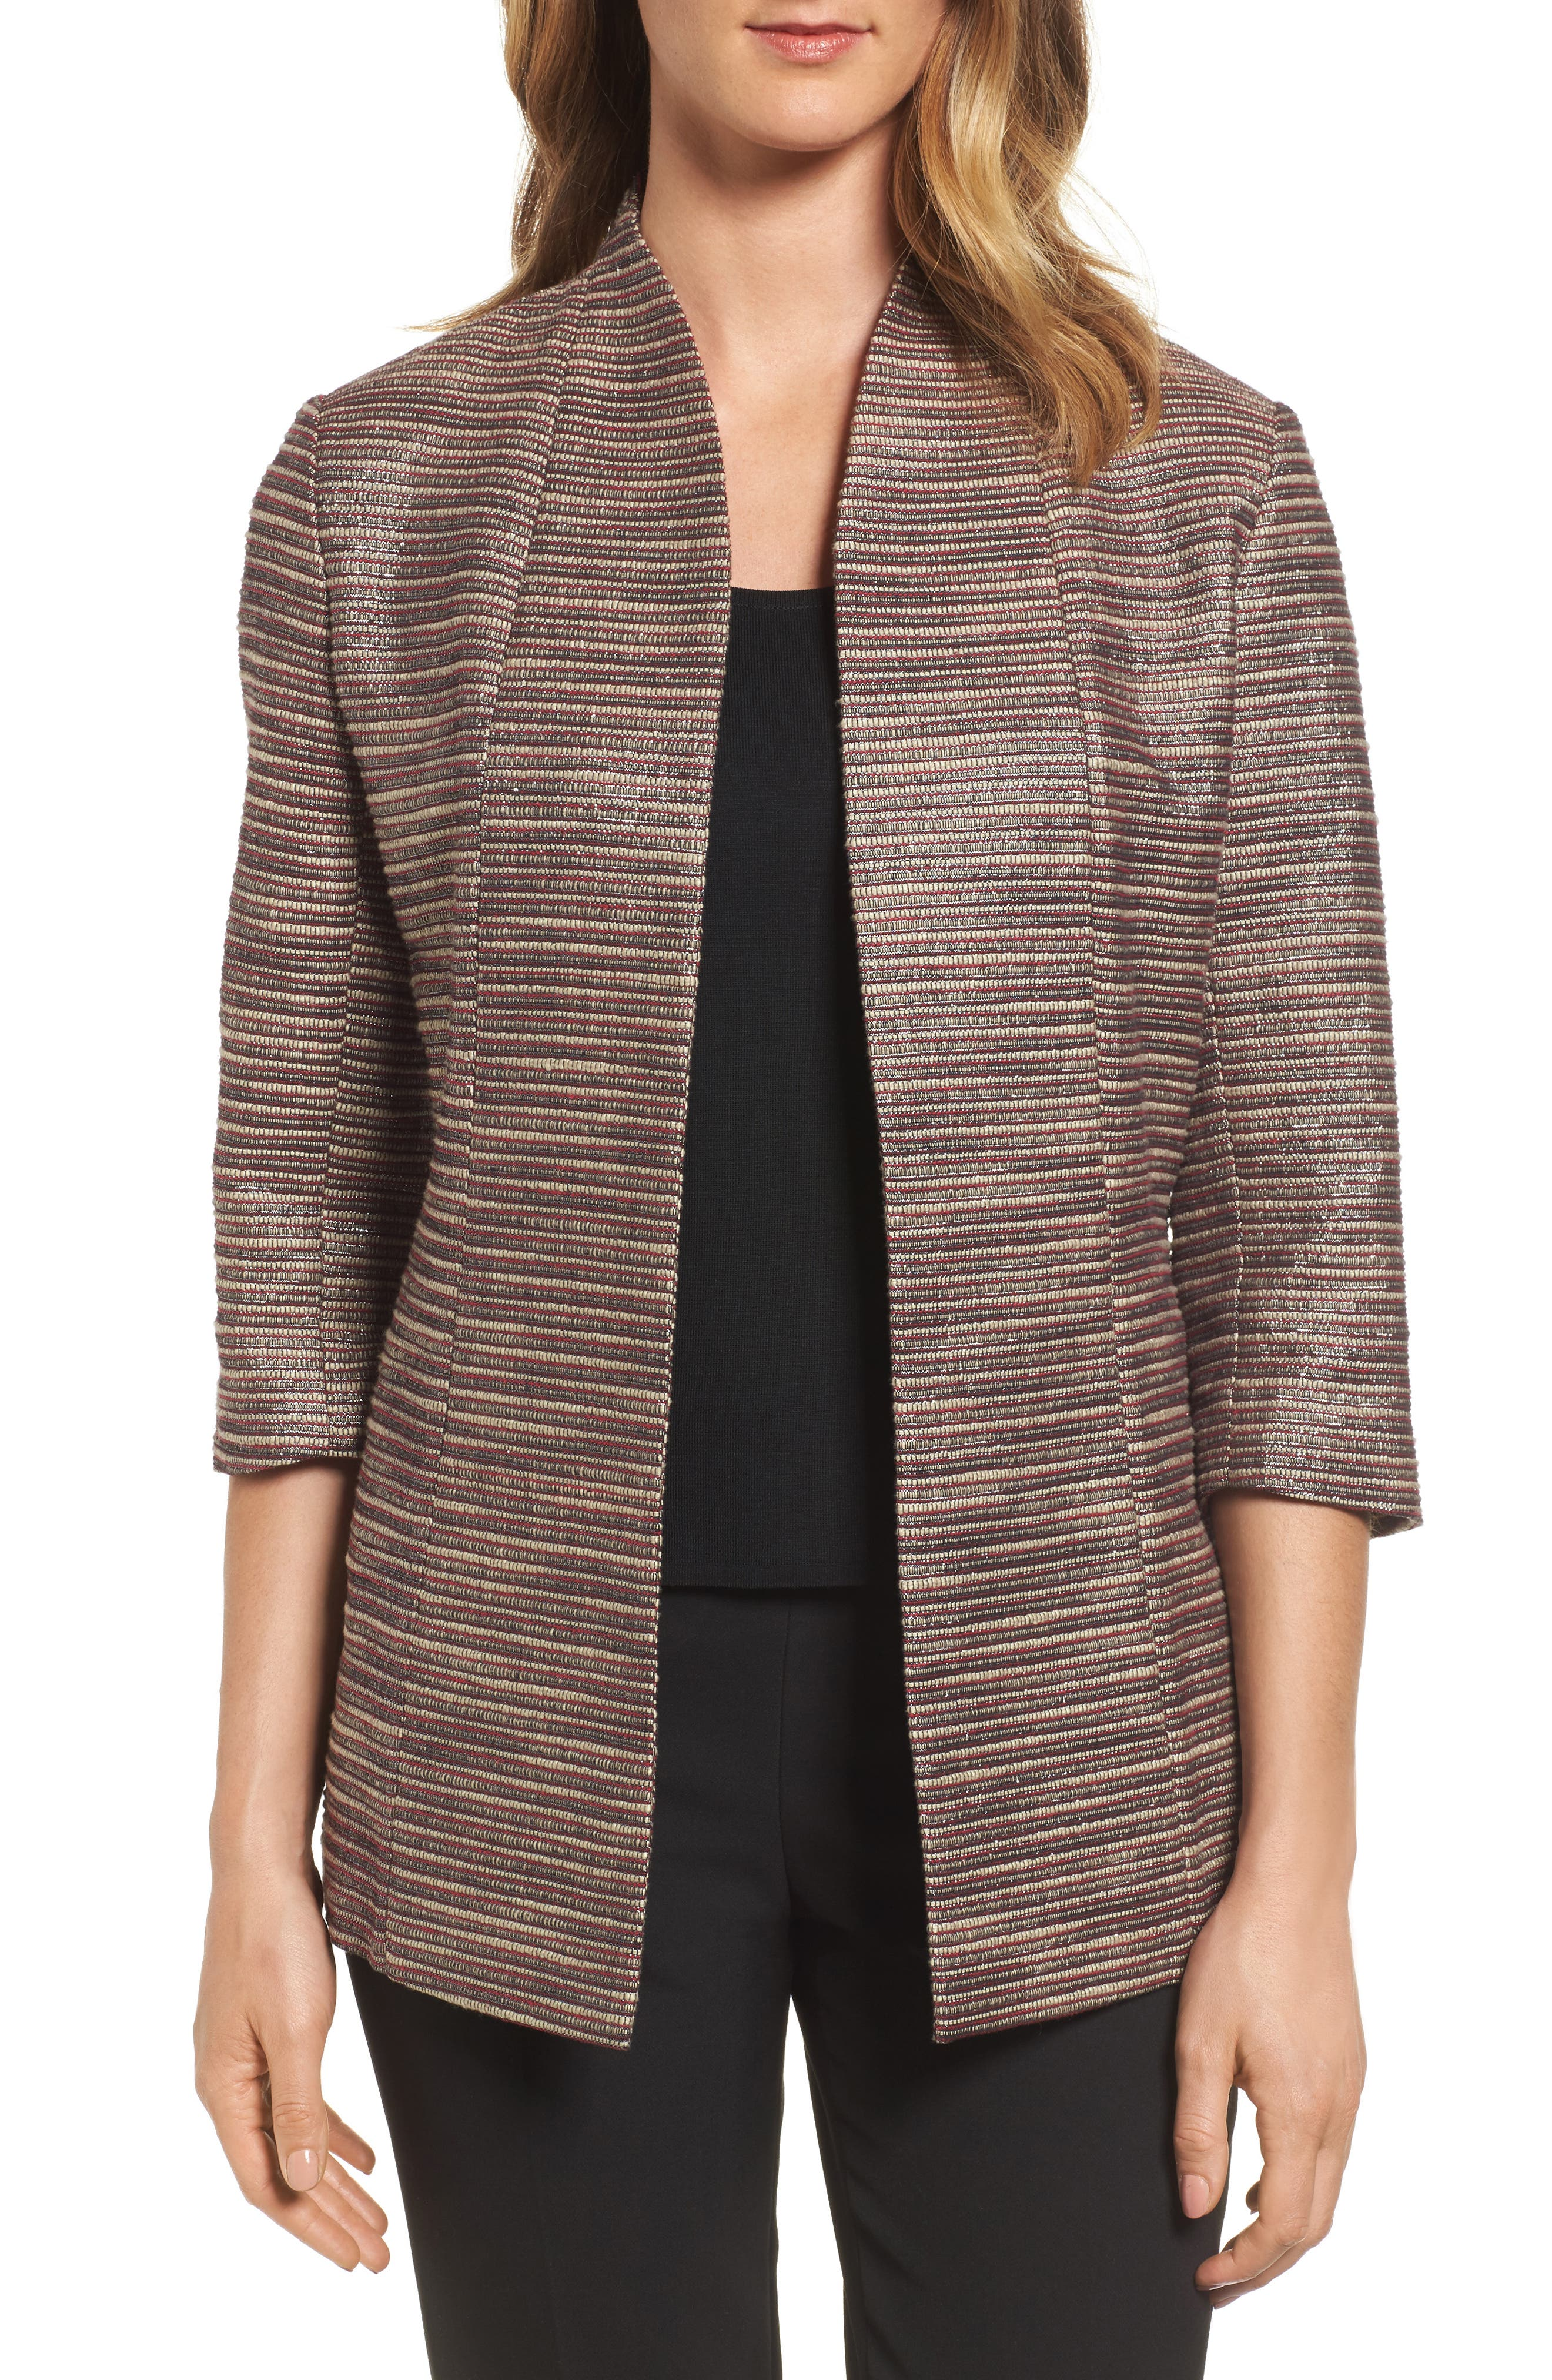 Ribbed Metallic Tweed Jacket,                             Main thumbnail 1, color,                             657